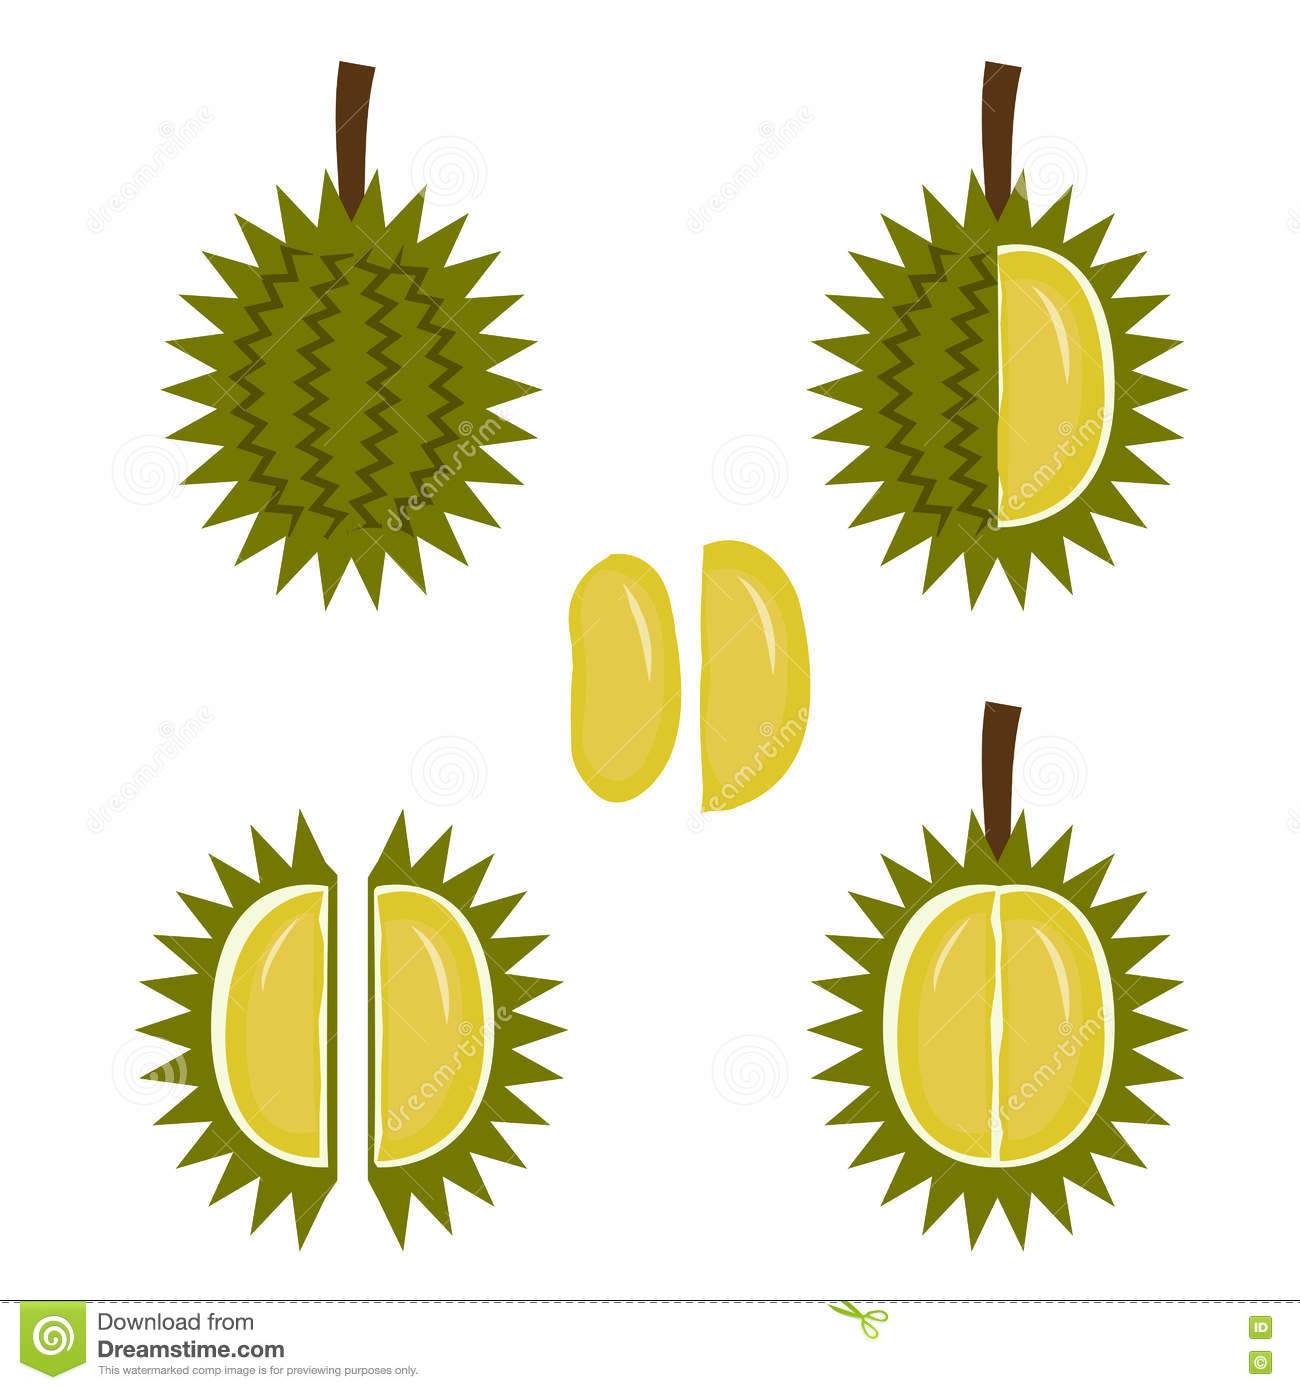 Durian Fruit Icon In Flat Style Stock Vector Illustration Of Calories Durio 75062841